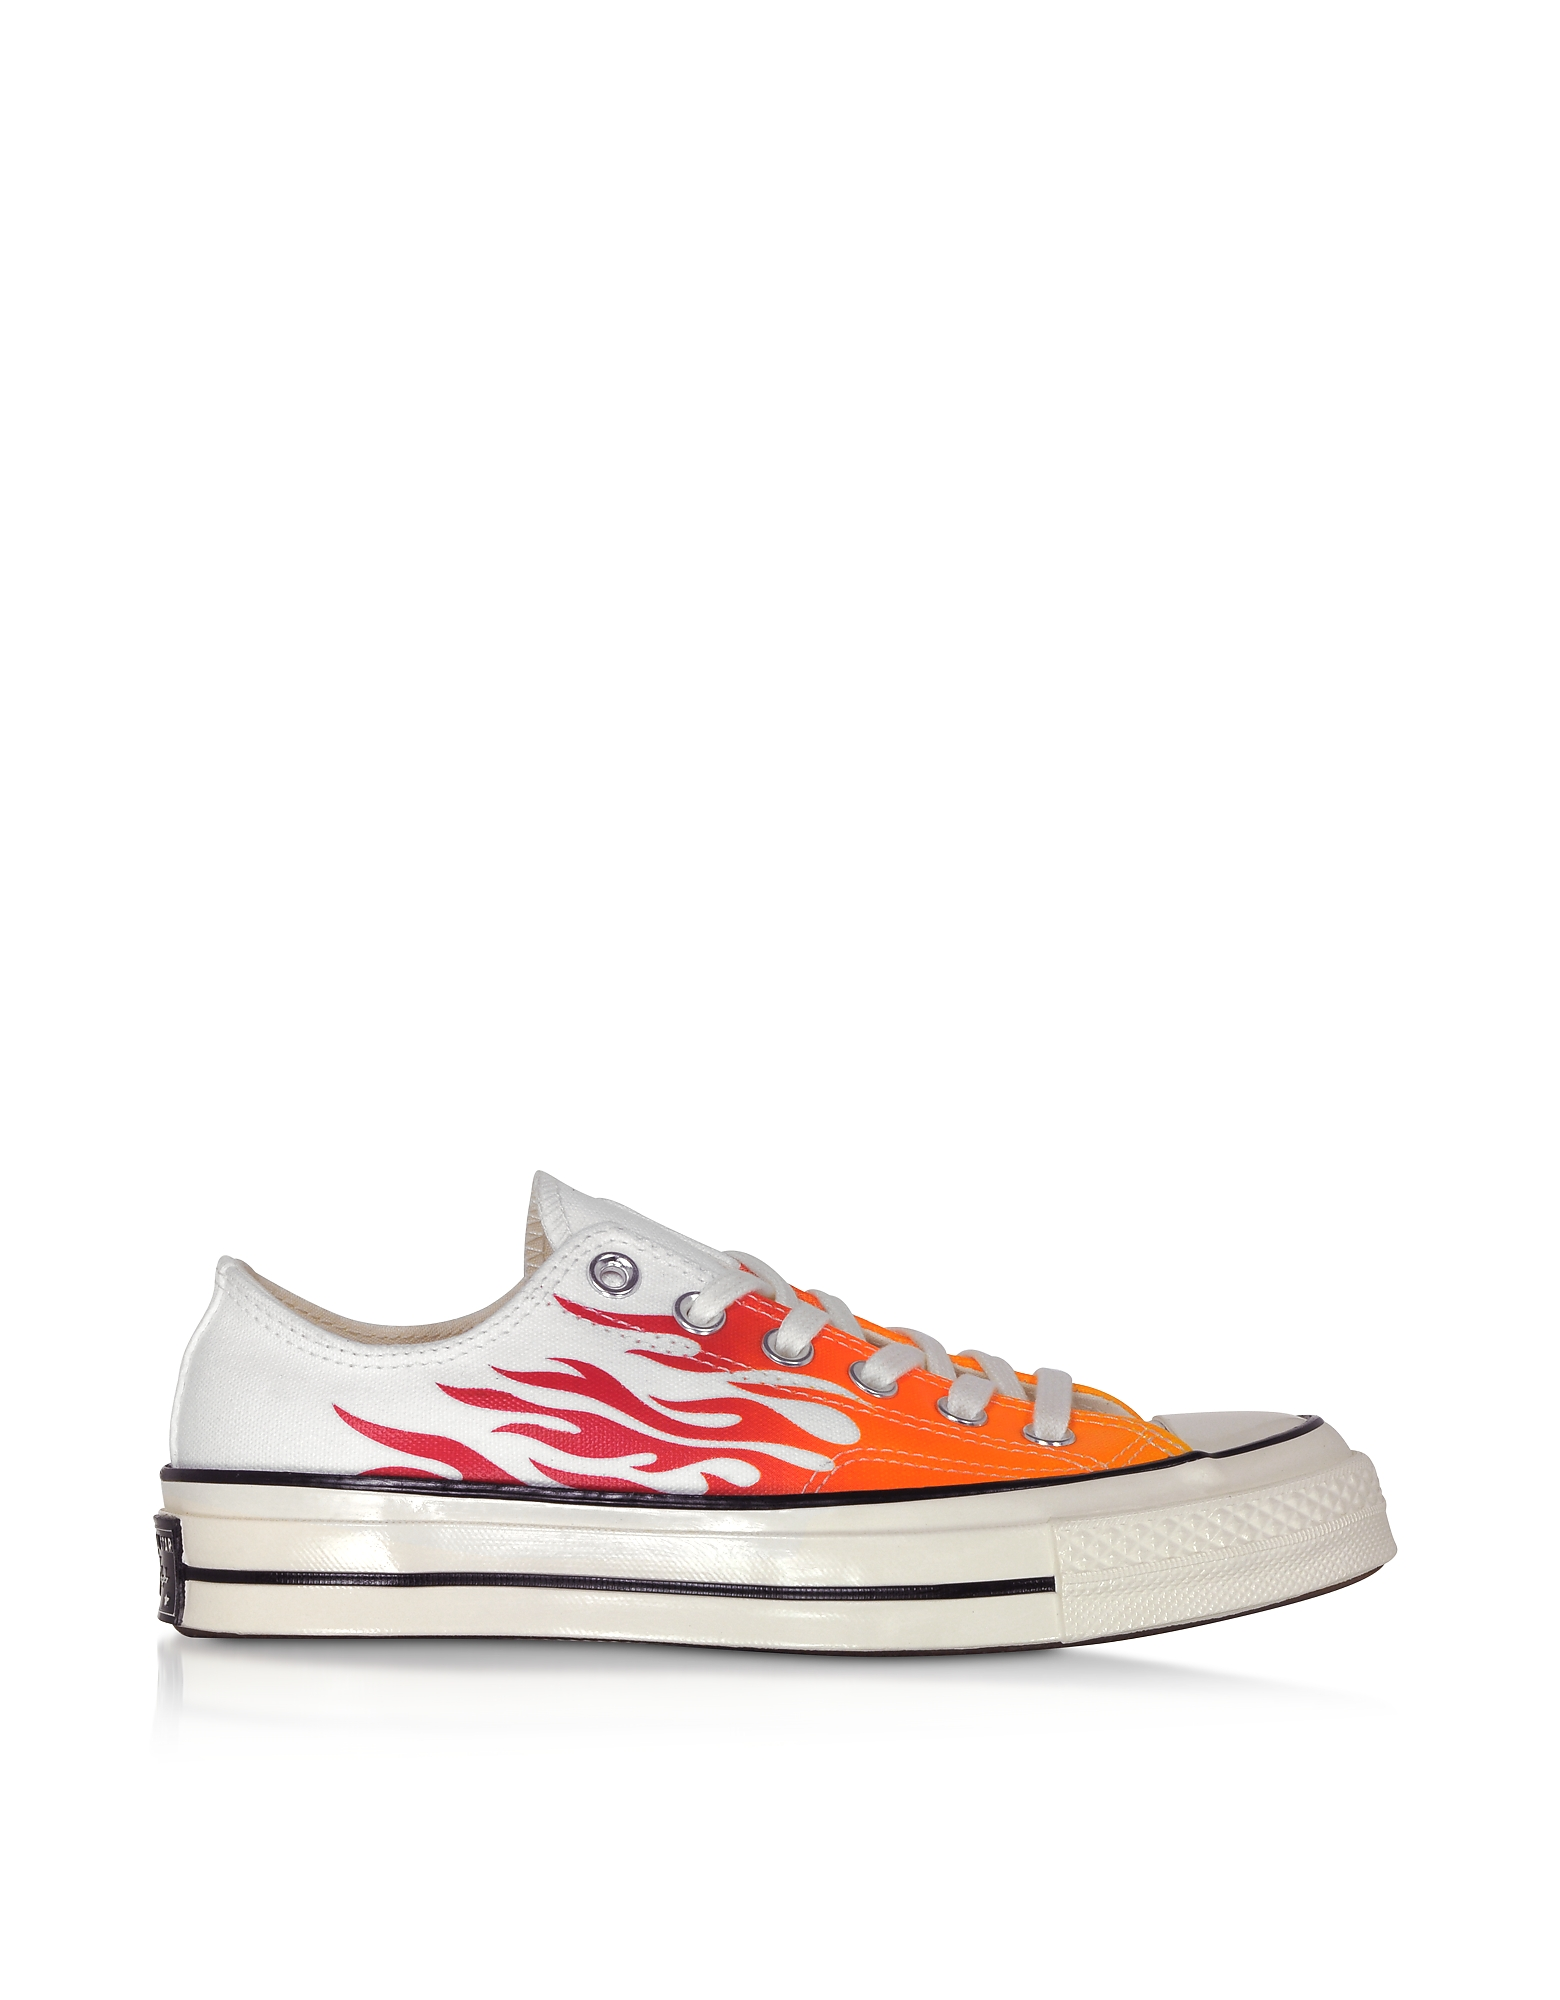 Converse Limited Edition Designer Shoes, Chuck 70 w/ Archive Prints Remix Low Top